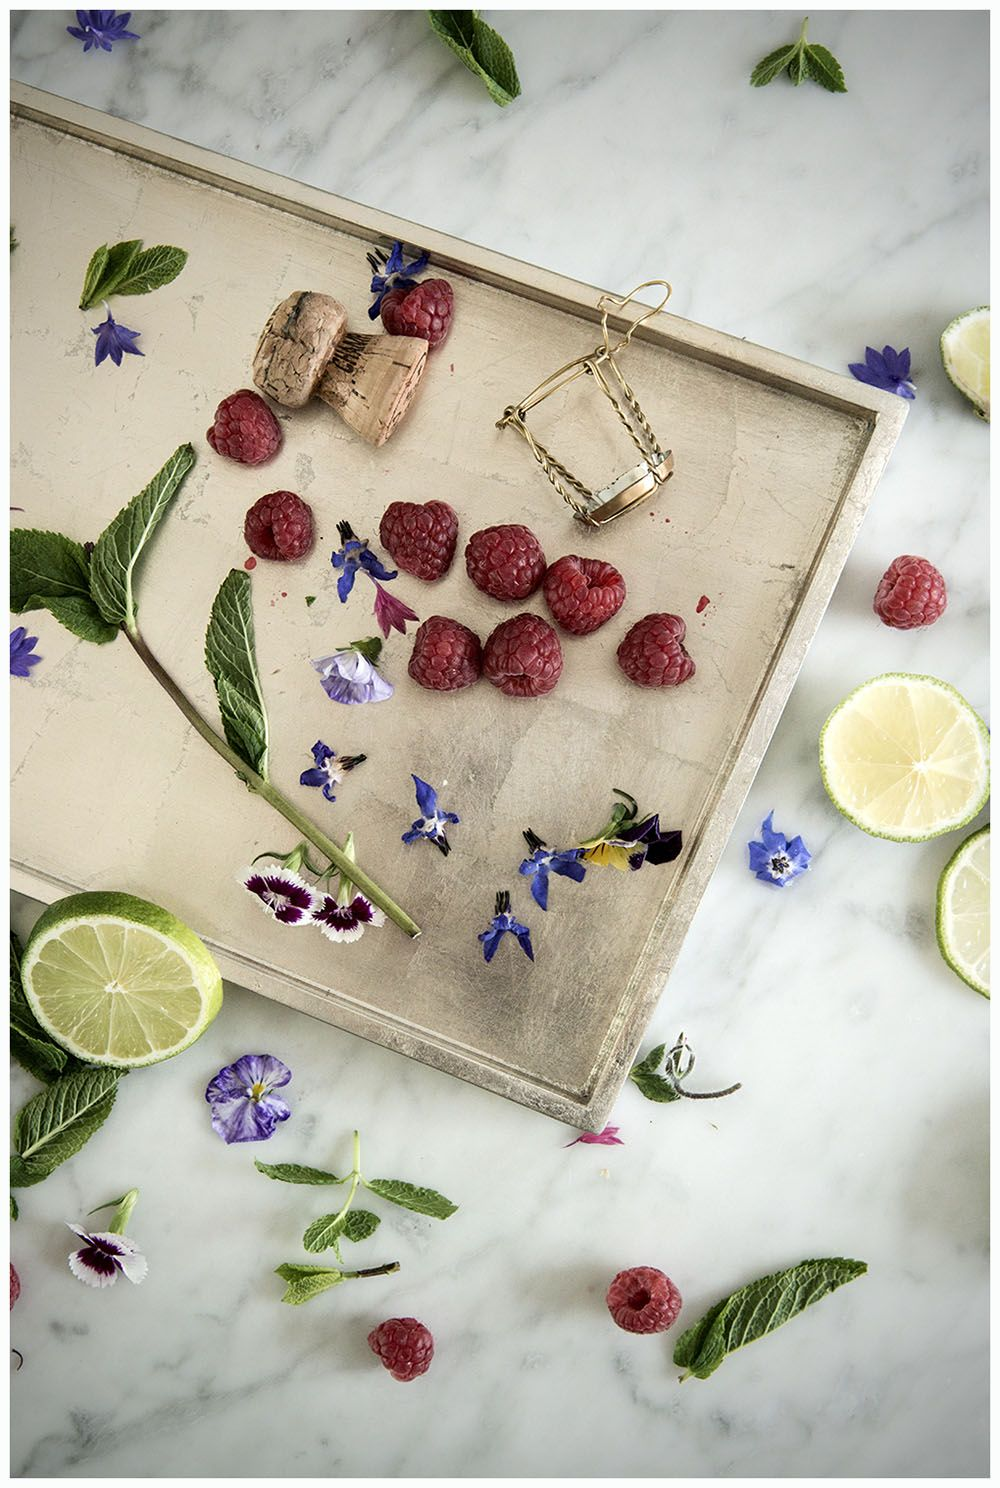 Flowers & Limes...